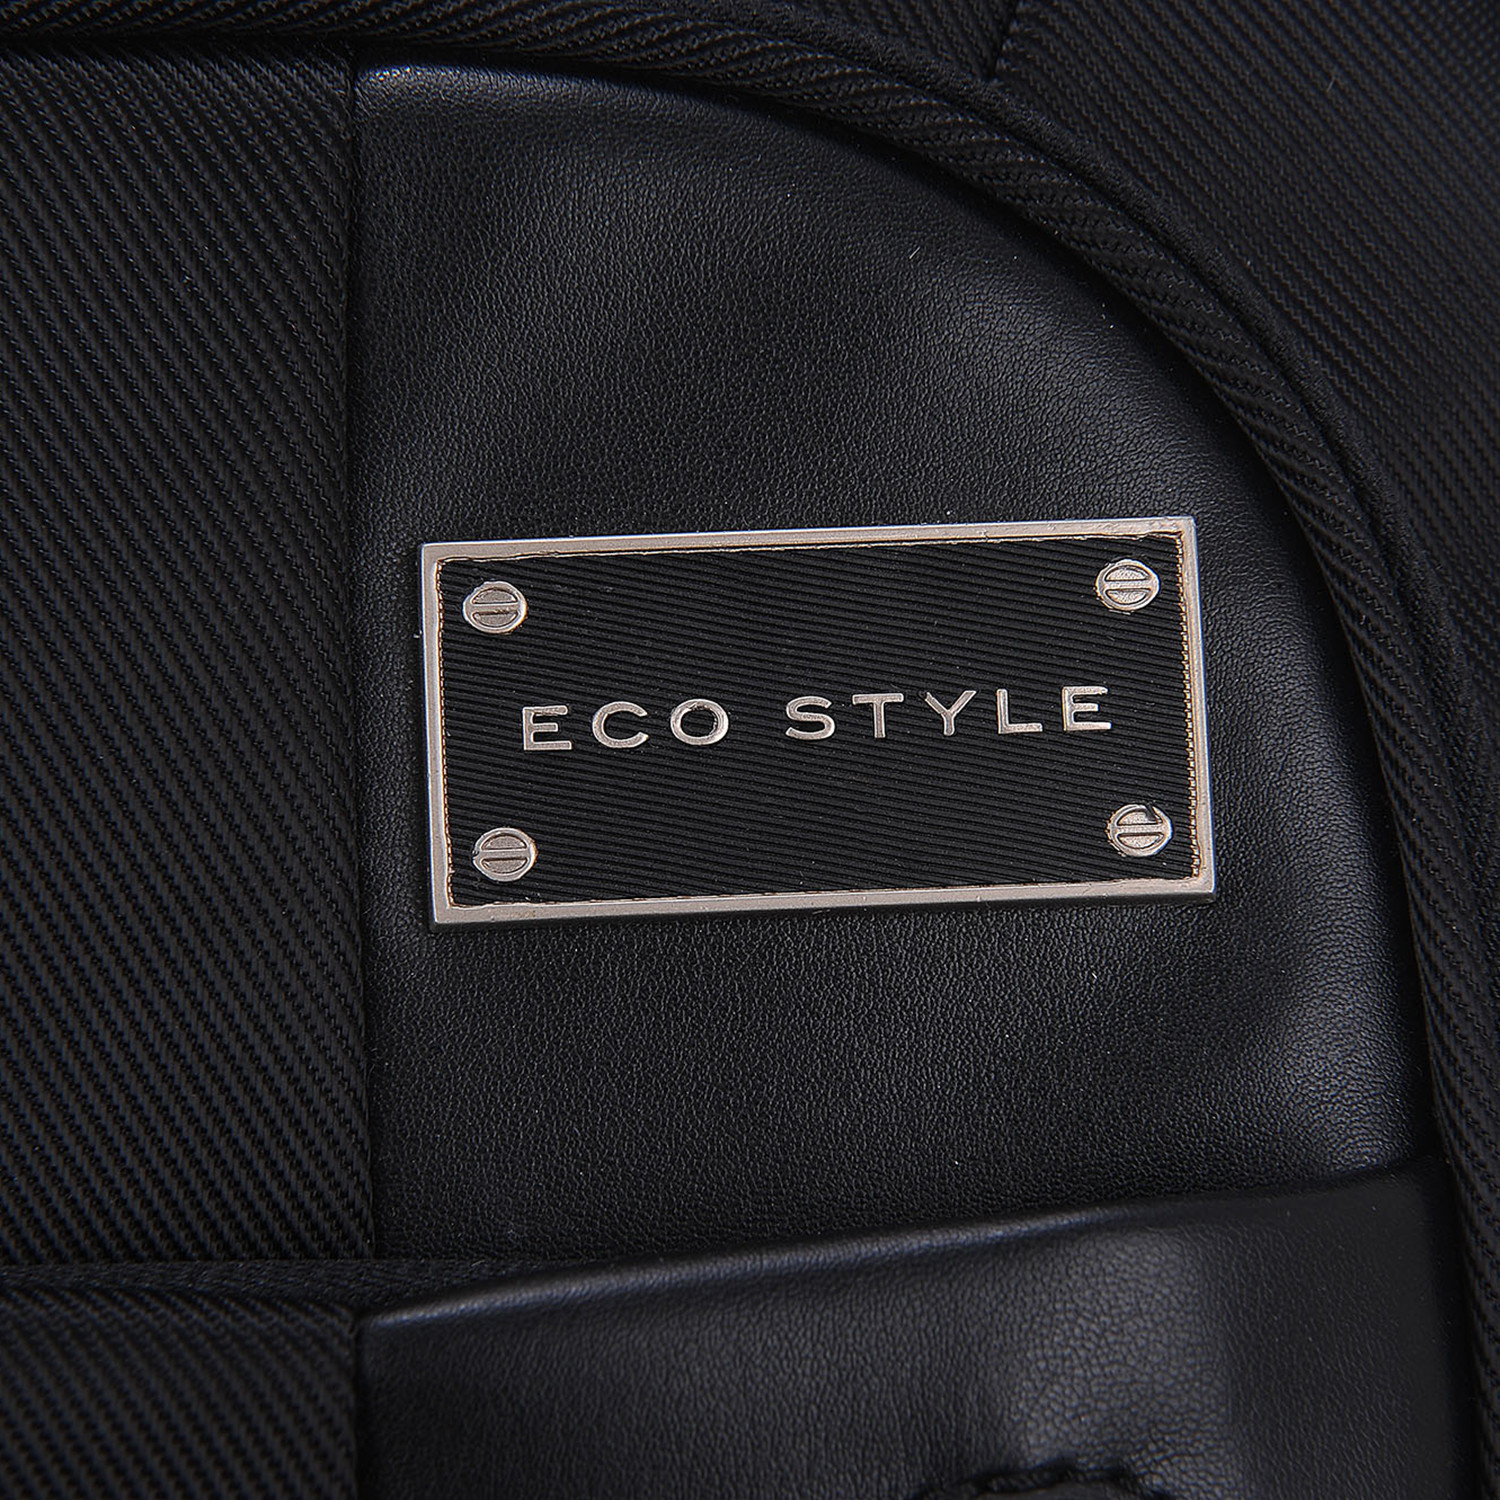 eco style in an - photo #29